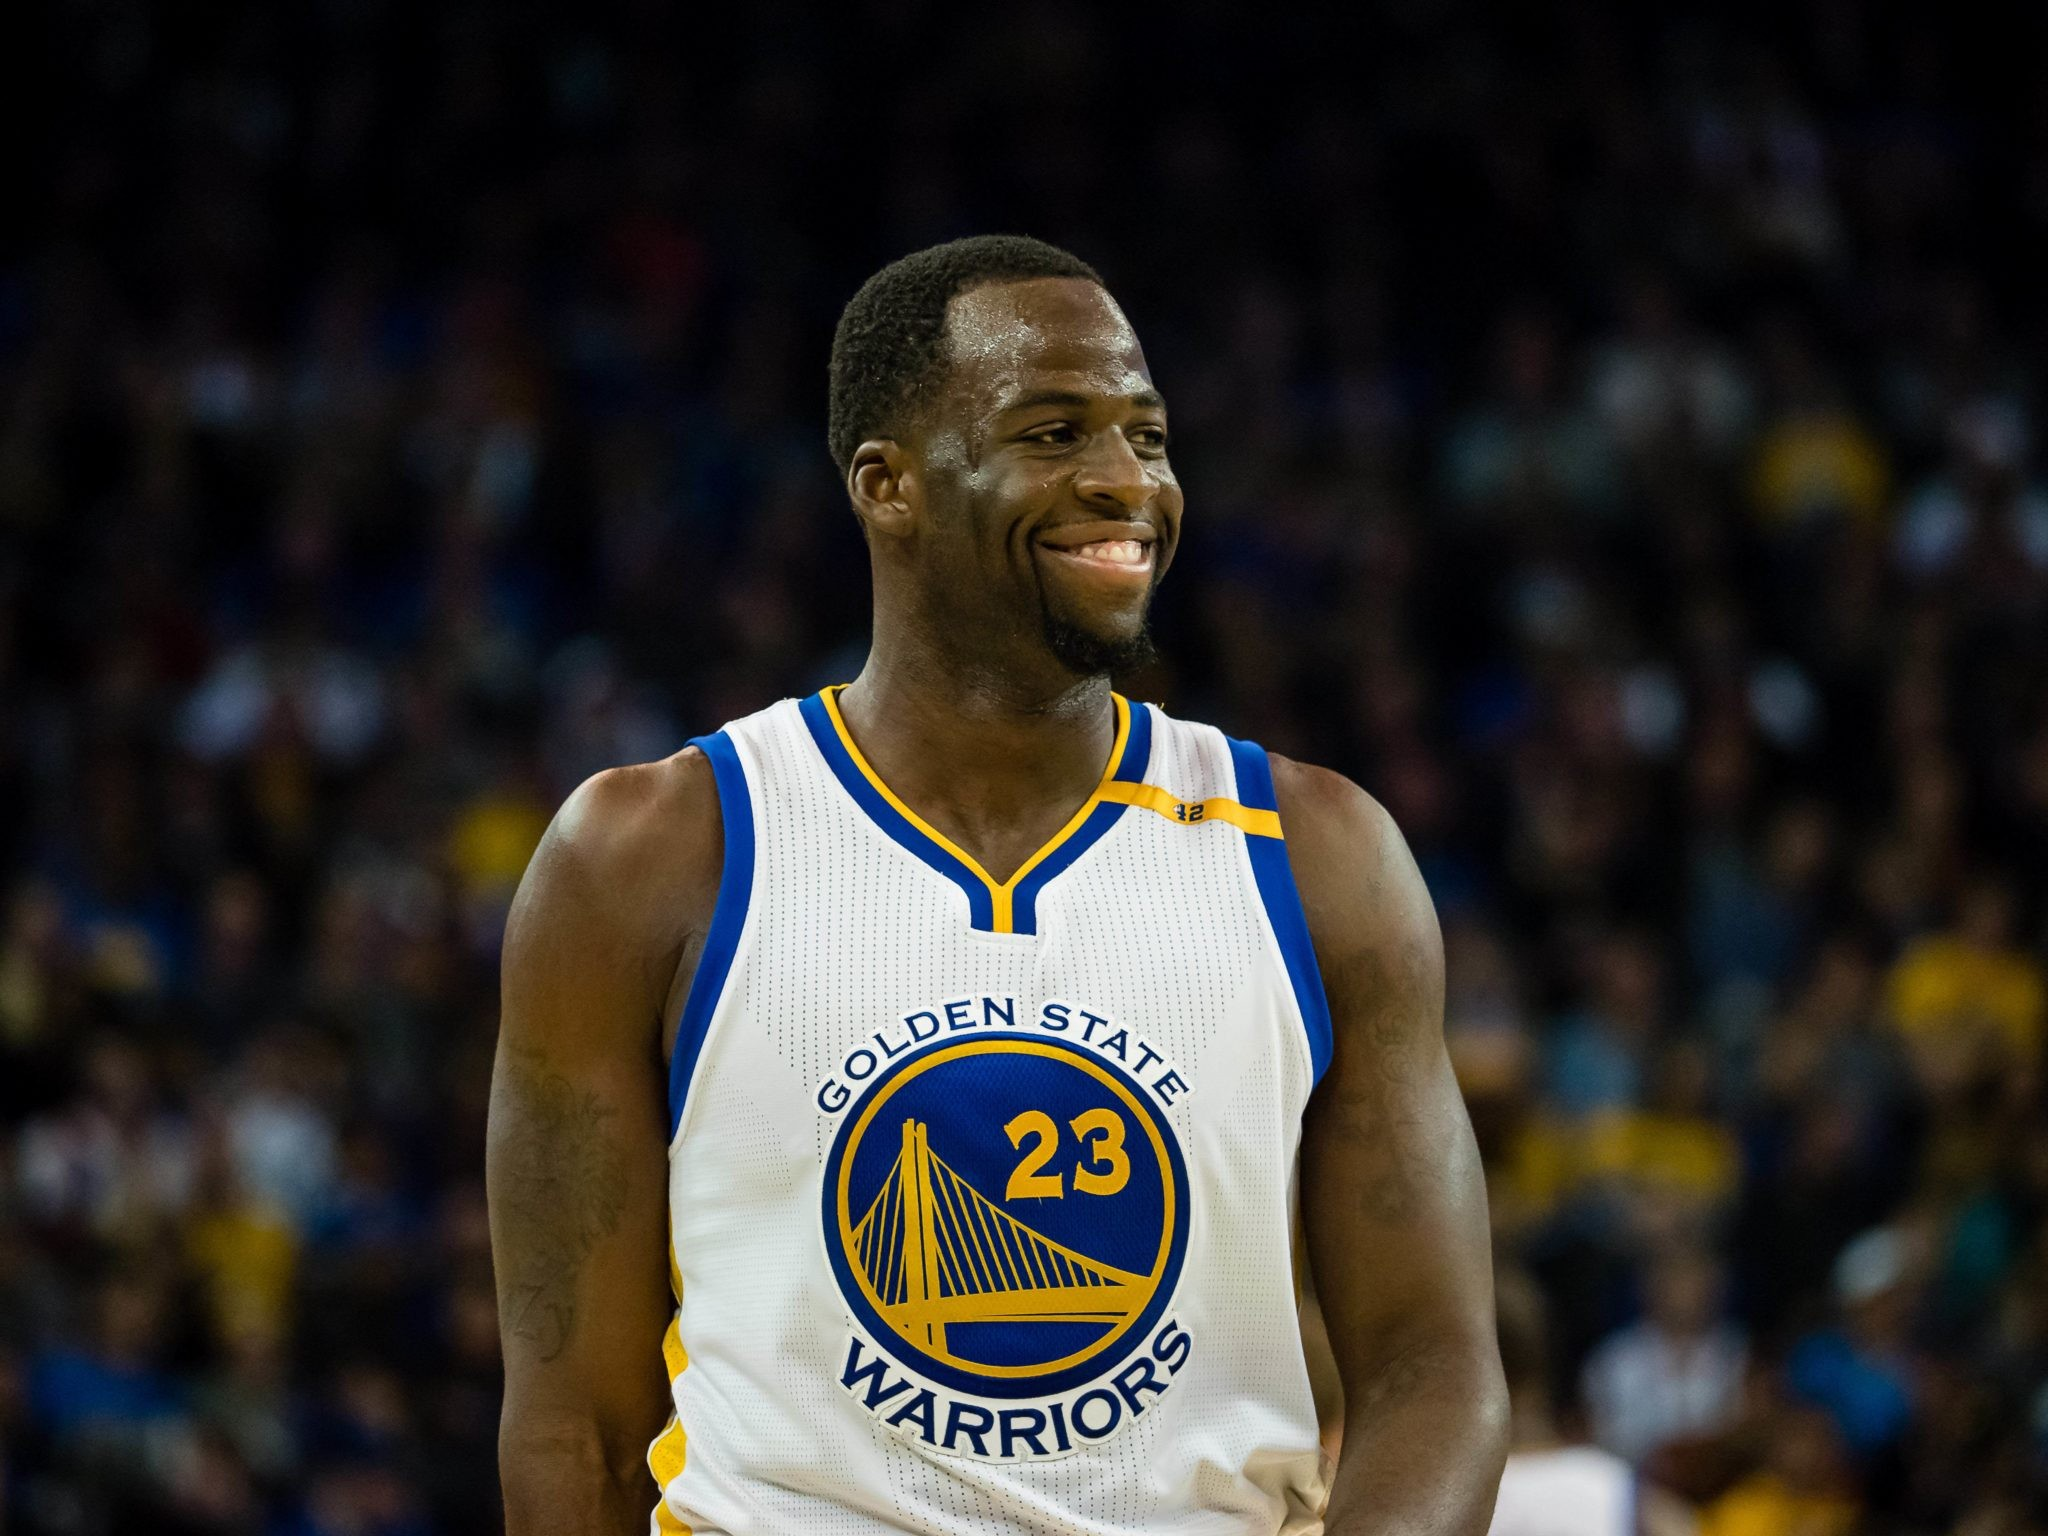 2048x1536 Apr 10, 2017; Oakland, CA, USA; Golden State Warriors forward Draymond